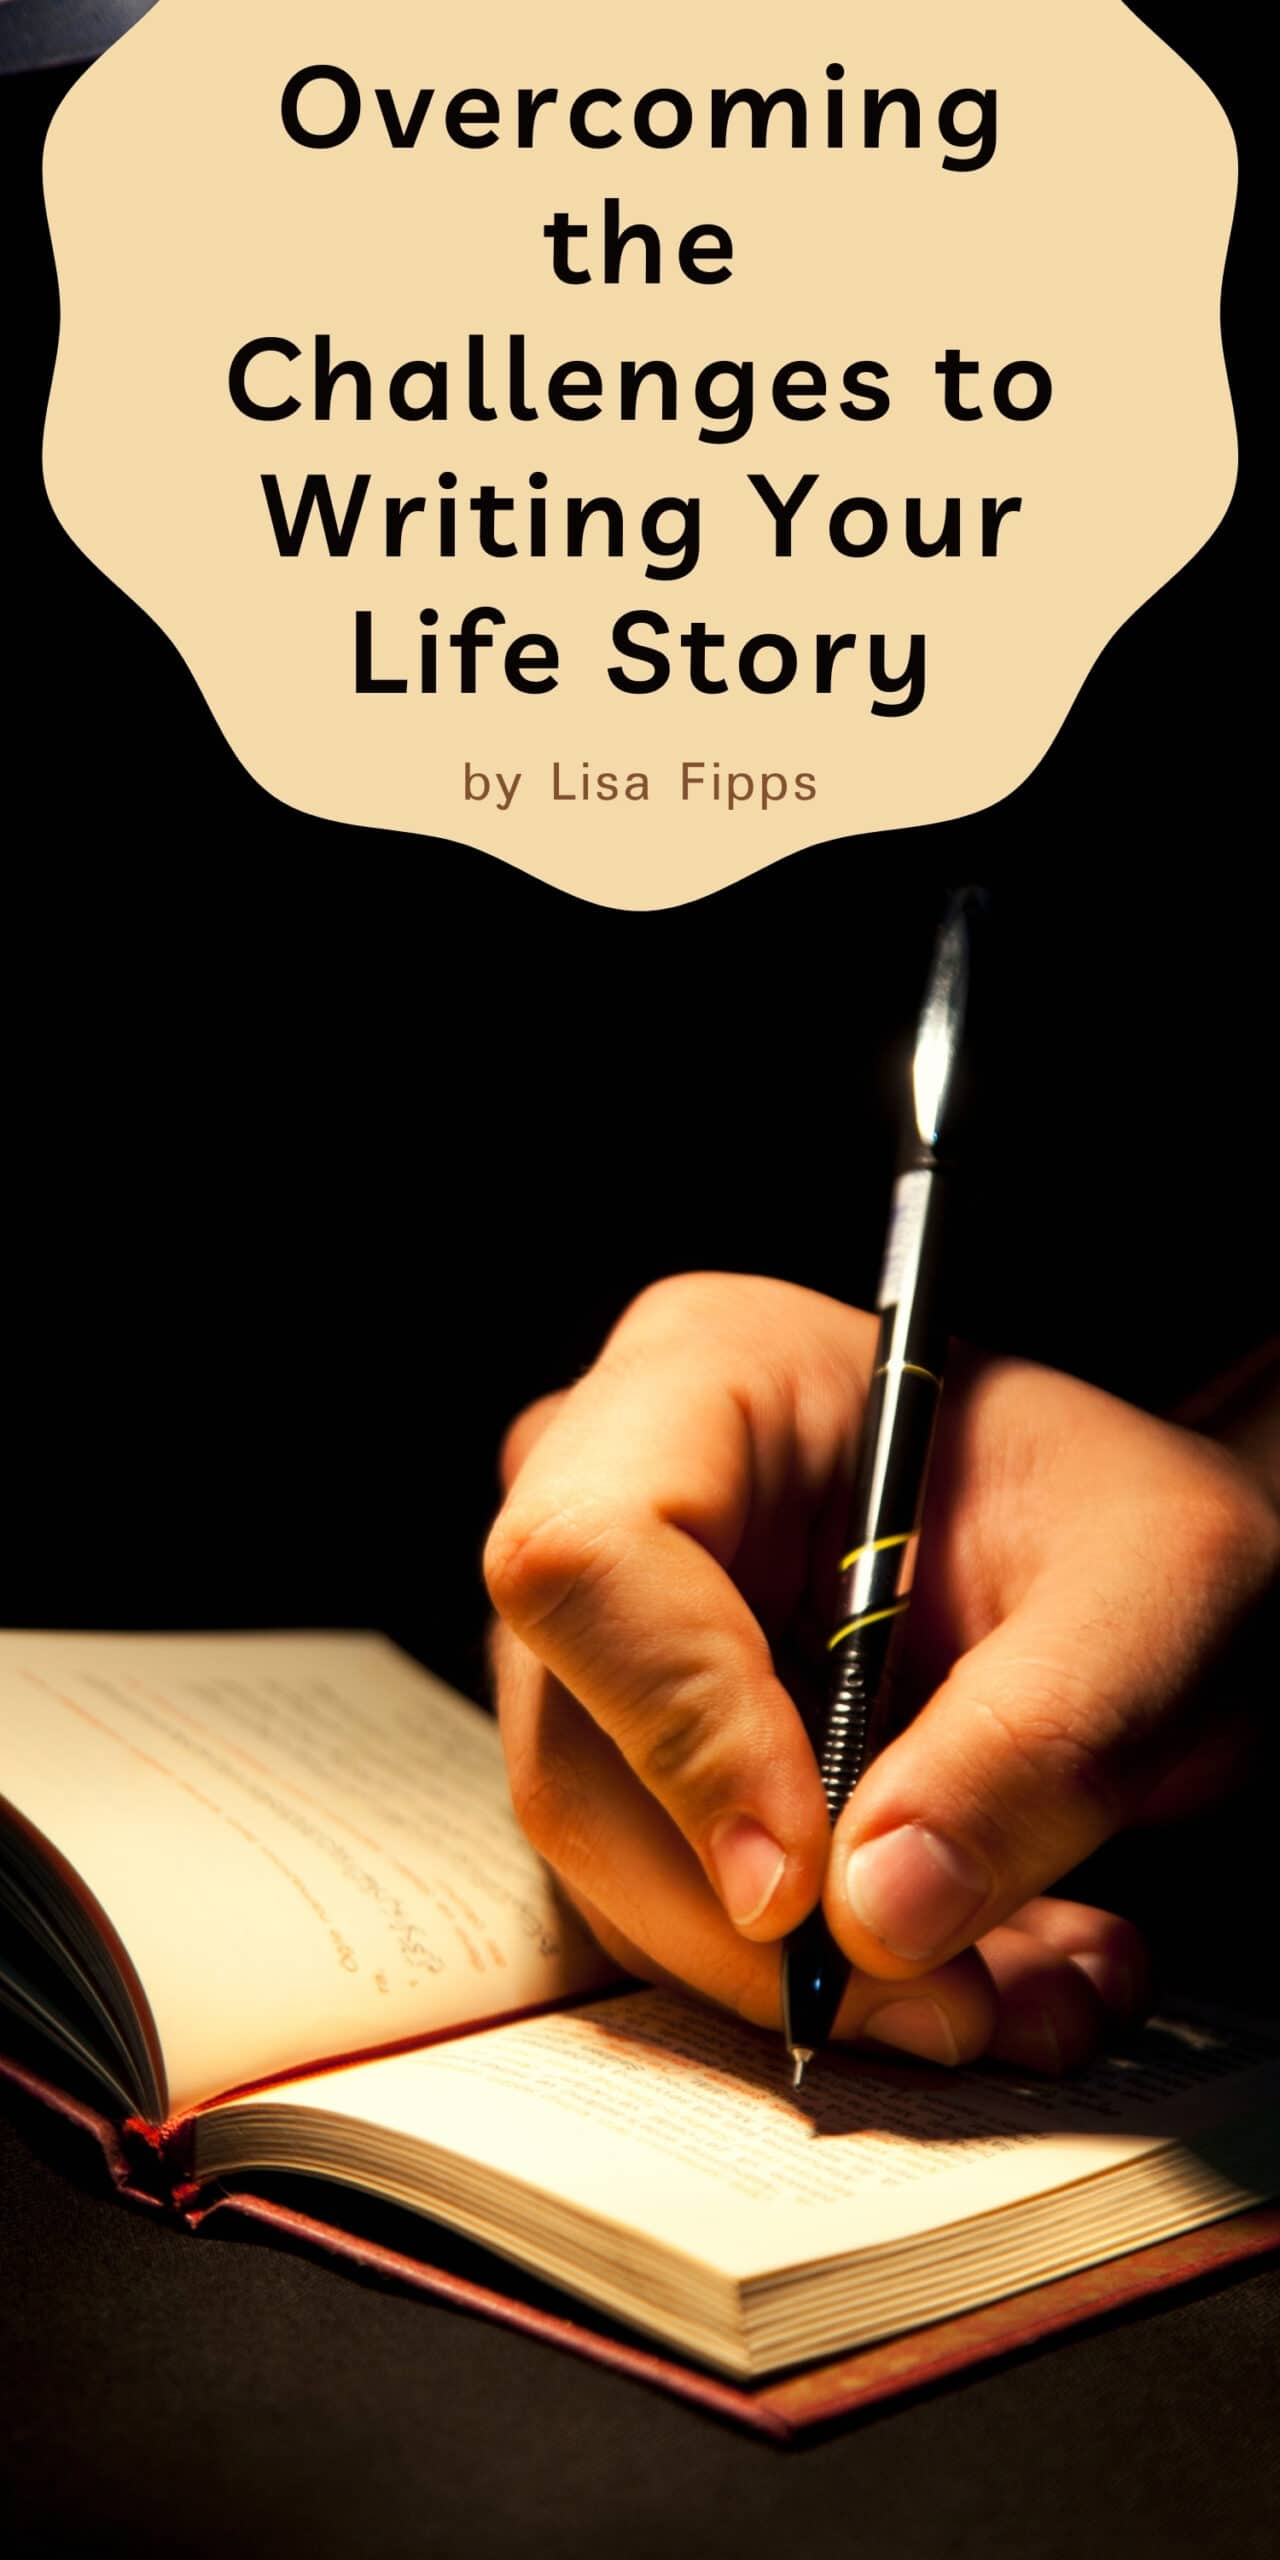 Overcoming the Challenges to Writing Your Life Story